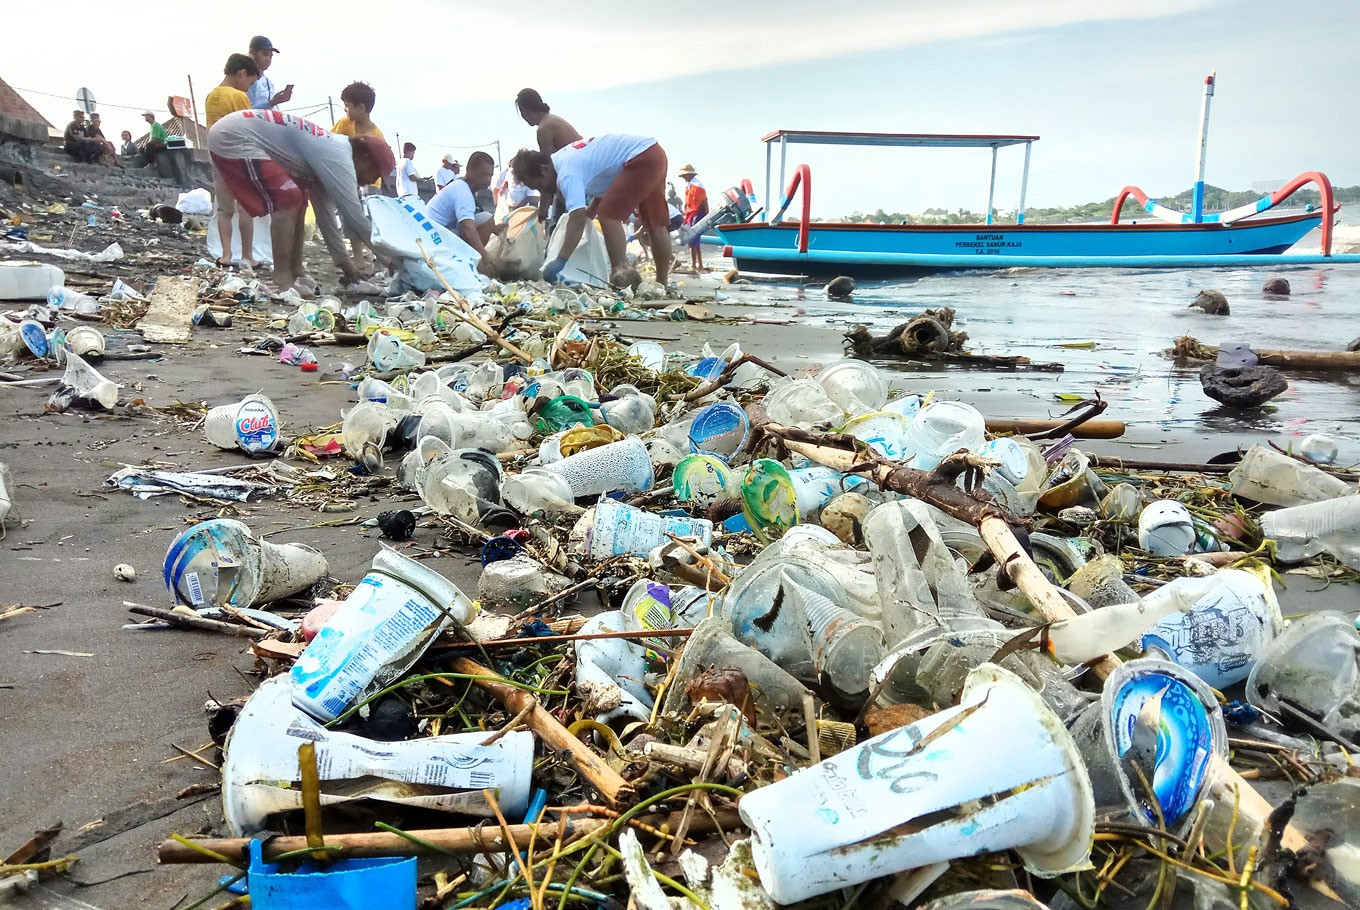 People living near Matahari Terbit Beach in Sanur, Bali, work together to clear trash, mainly plastic bottles and food packaging, from the beach. (JP/Zul Trio Anggono)